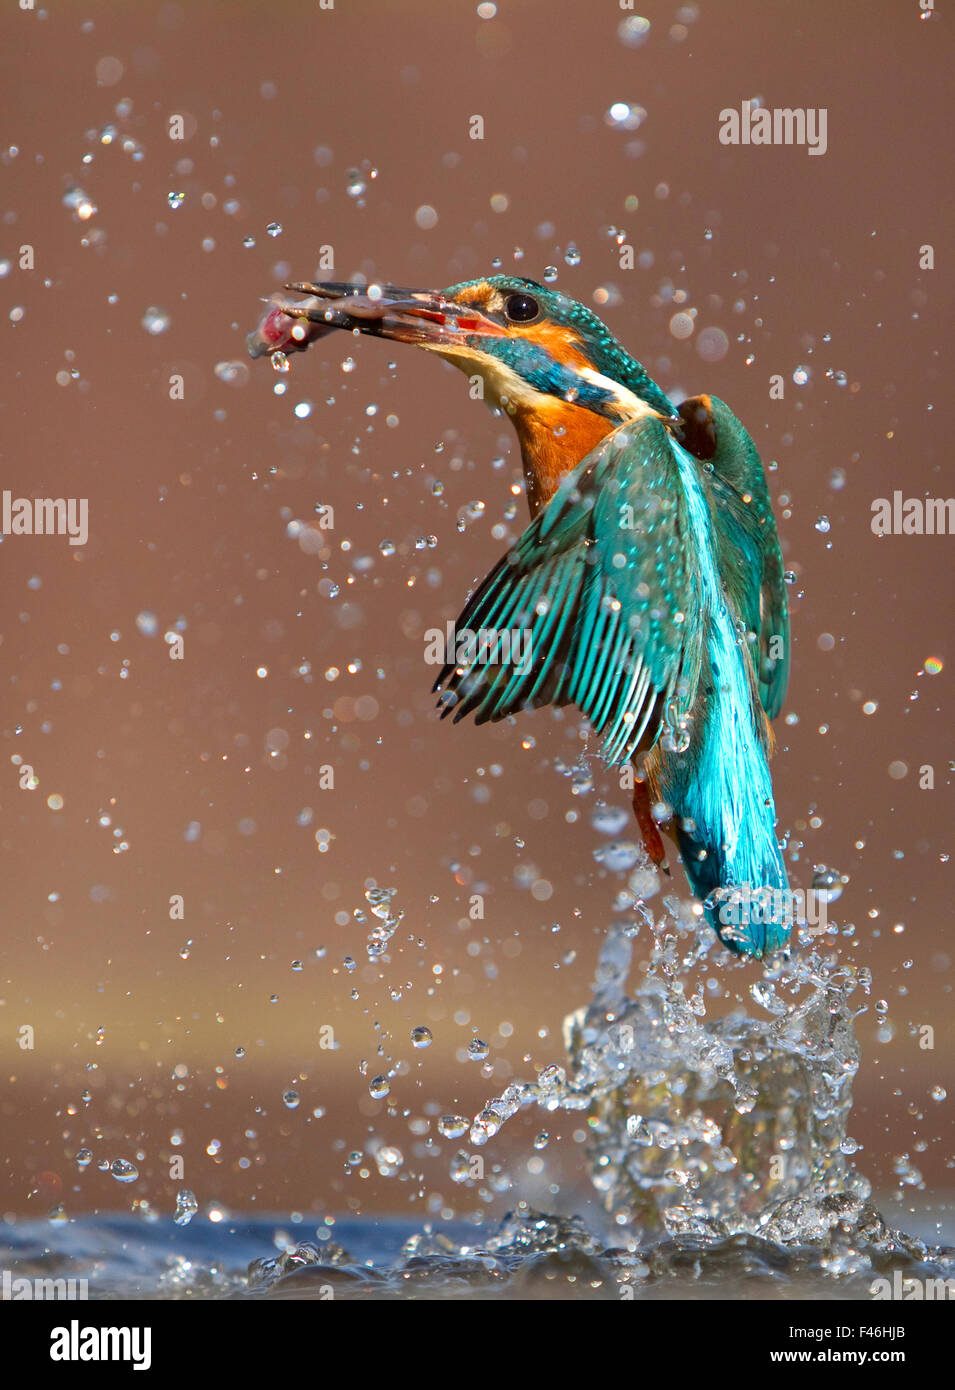 Kingfisher (Alcedo atthis) flying up from water with caught fish, Worcestershire, UK, March. - Stock Image